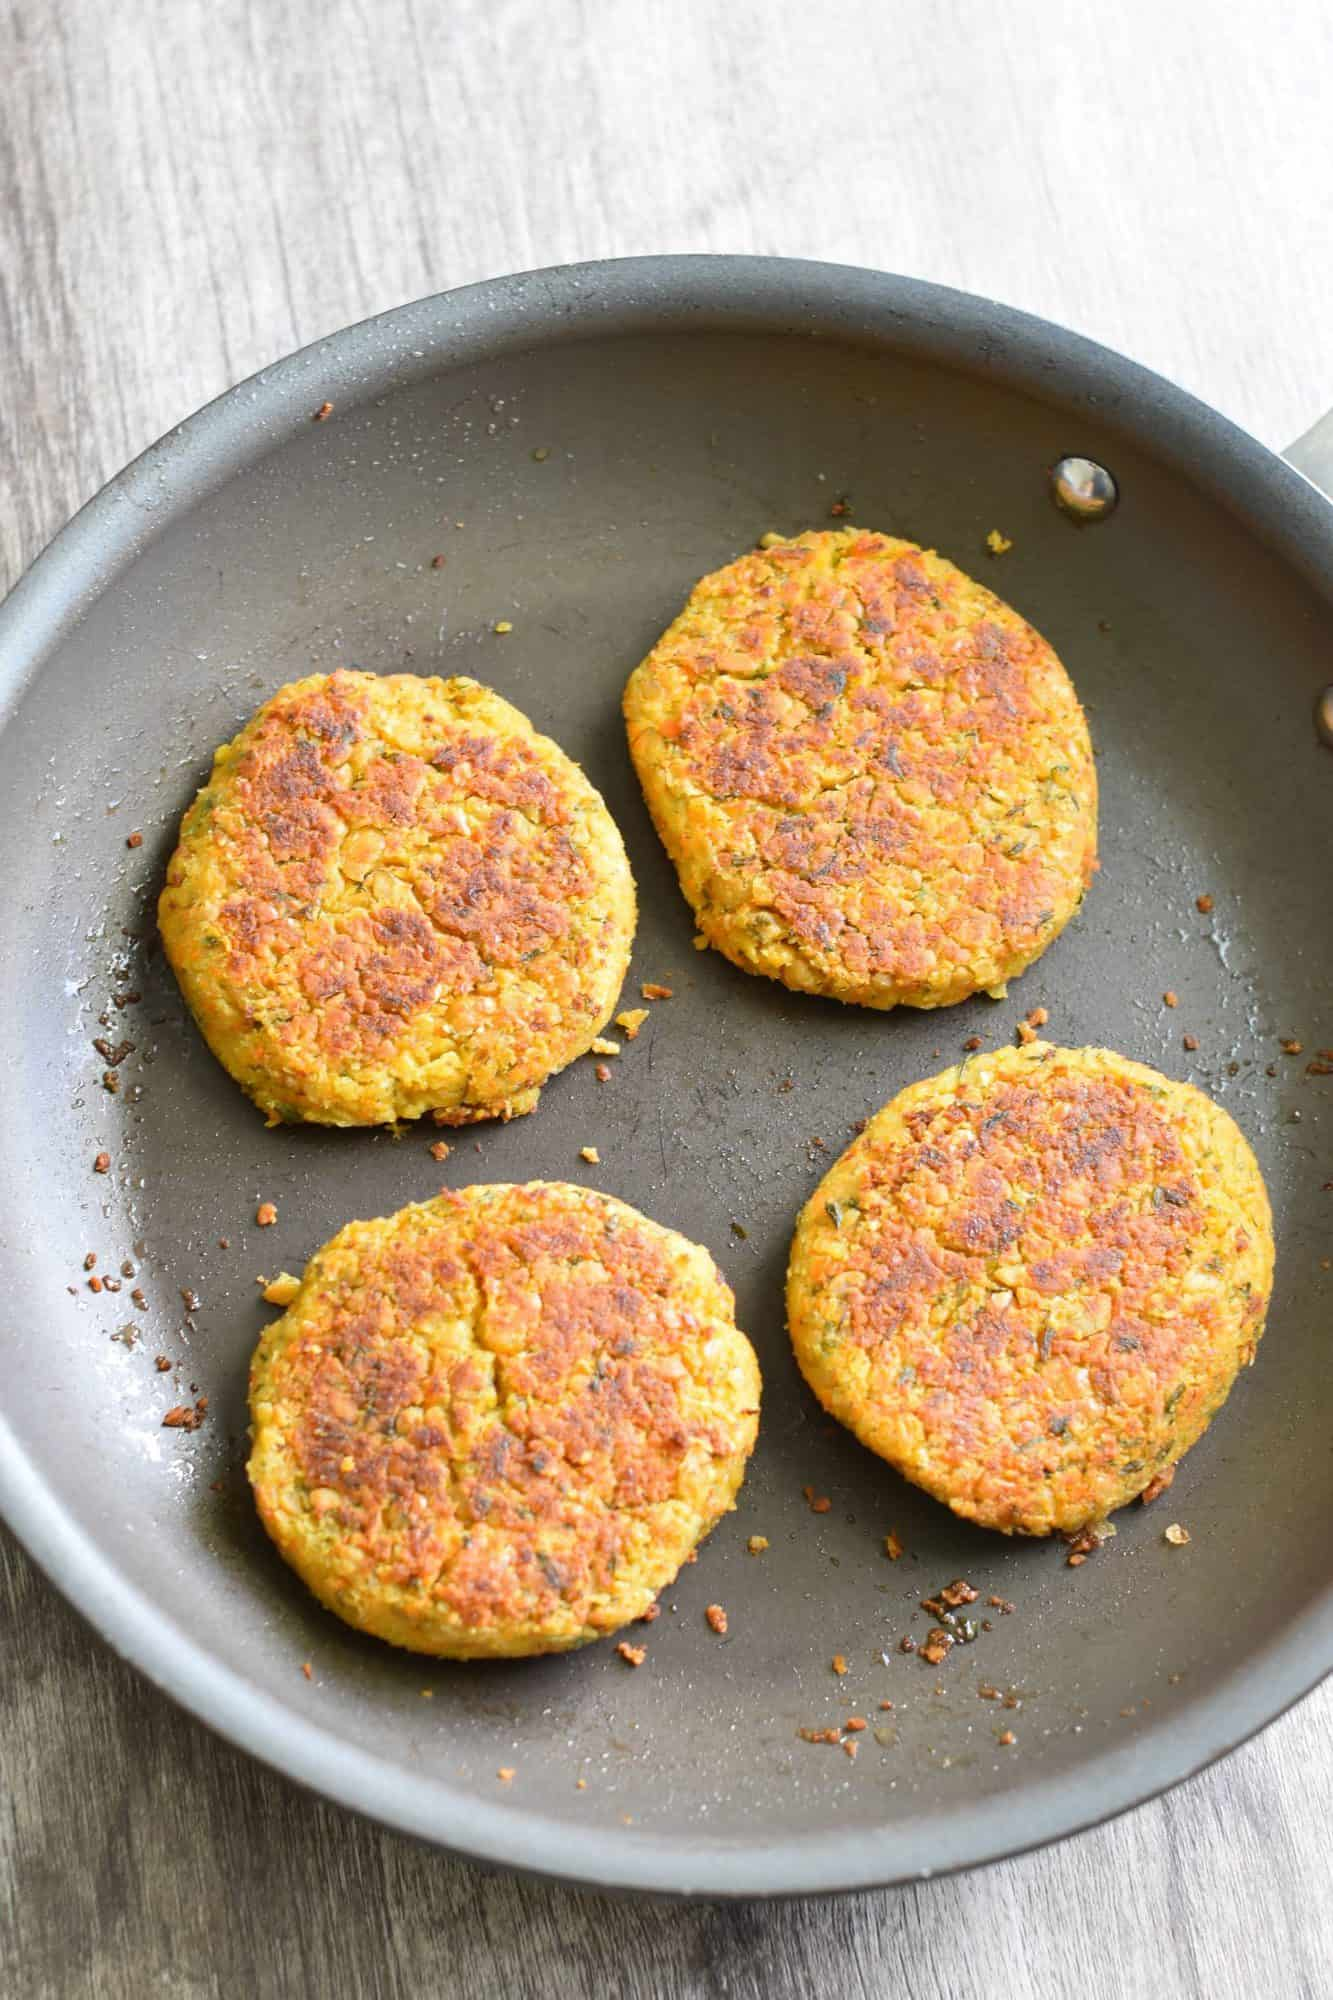 cooked burgers in skillet